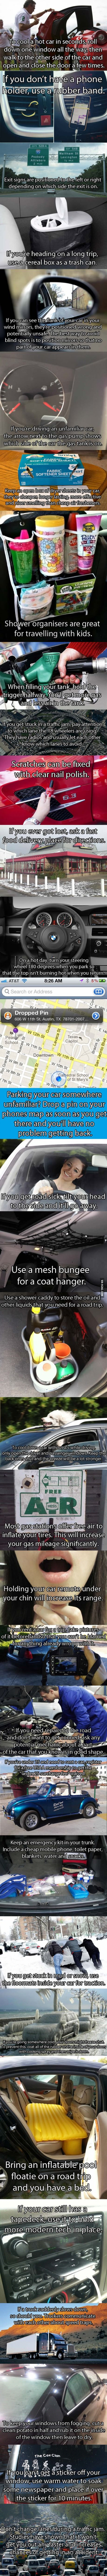 32 Driving Hacks That Will Make You A Roadtripping Master